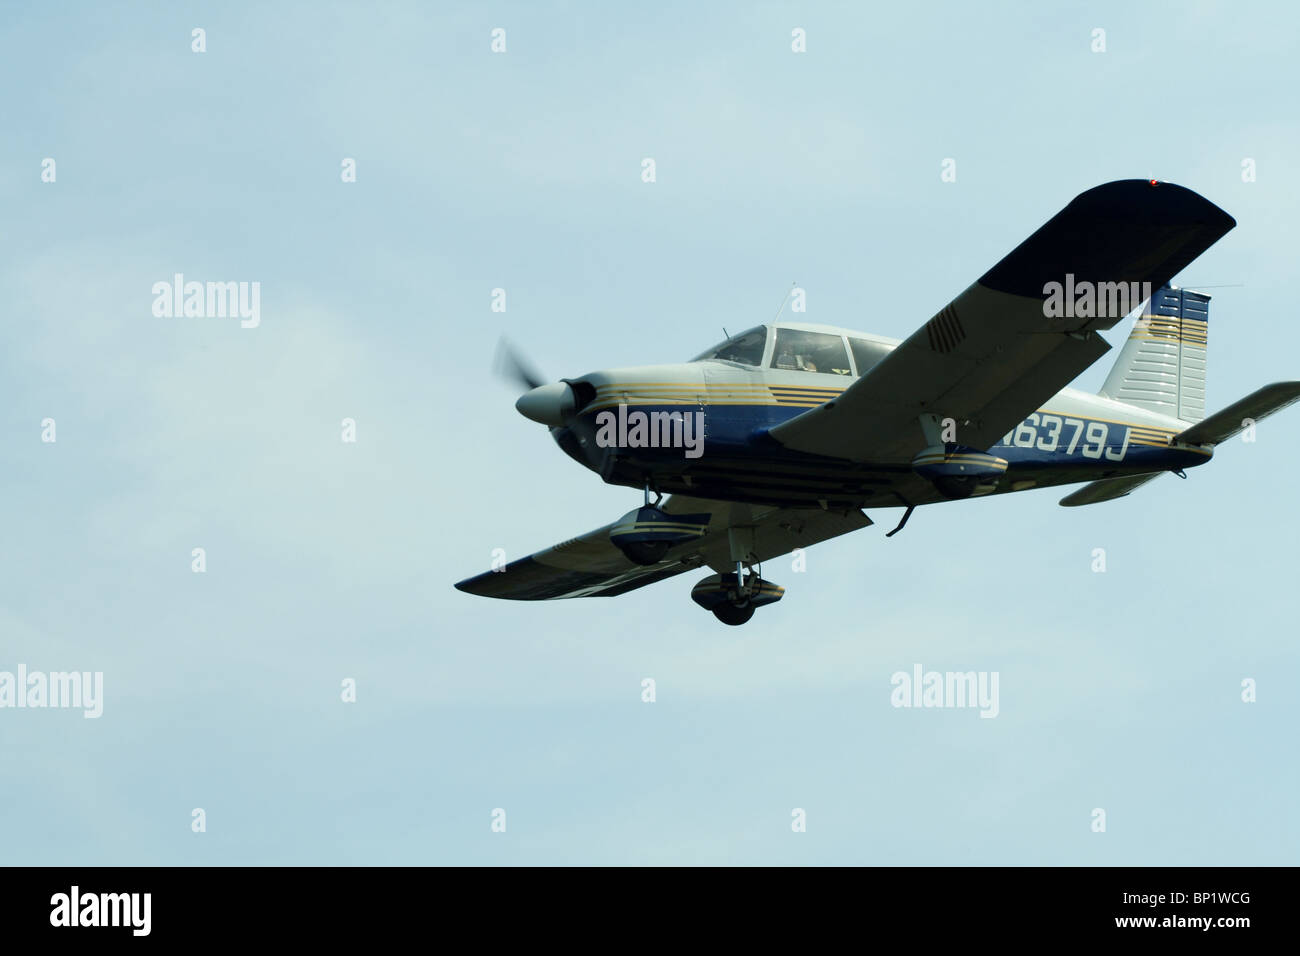 Prop plane Piper PA-28-180 on final approach landing at Cantrell Field in Conway, Arkansas - Stock Image